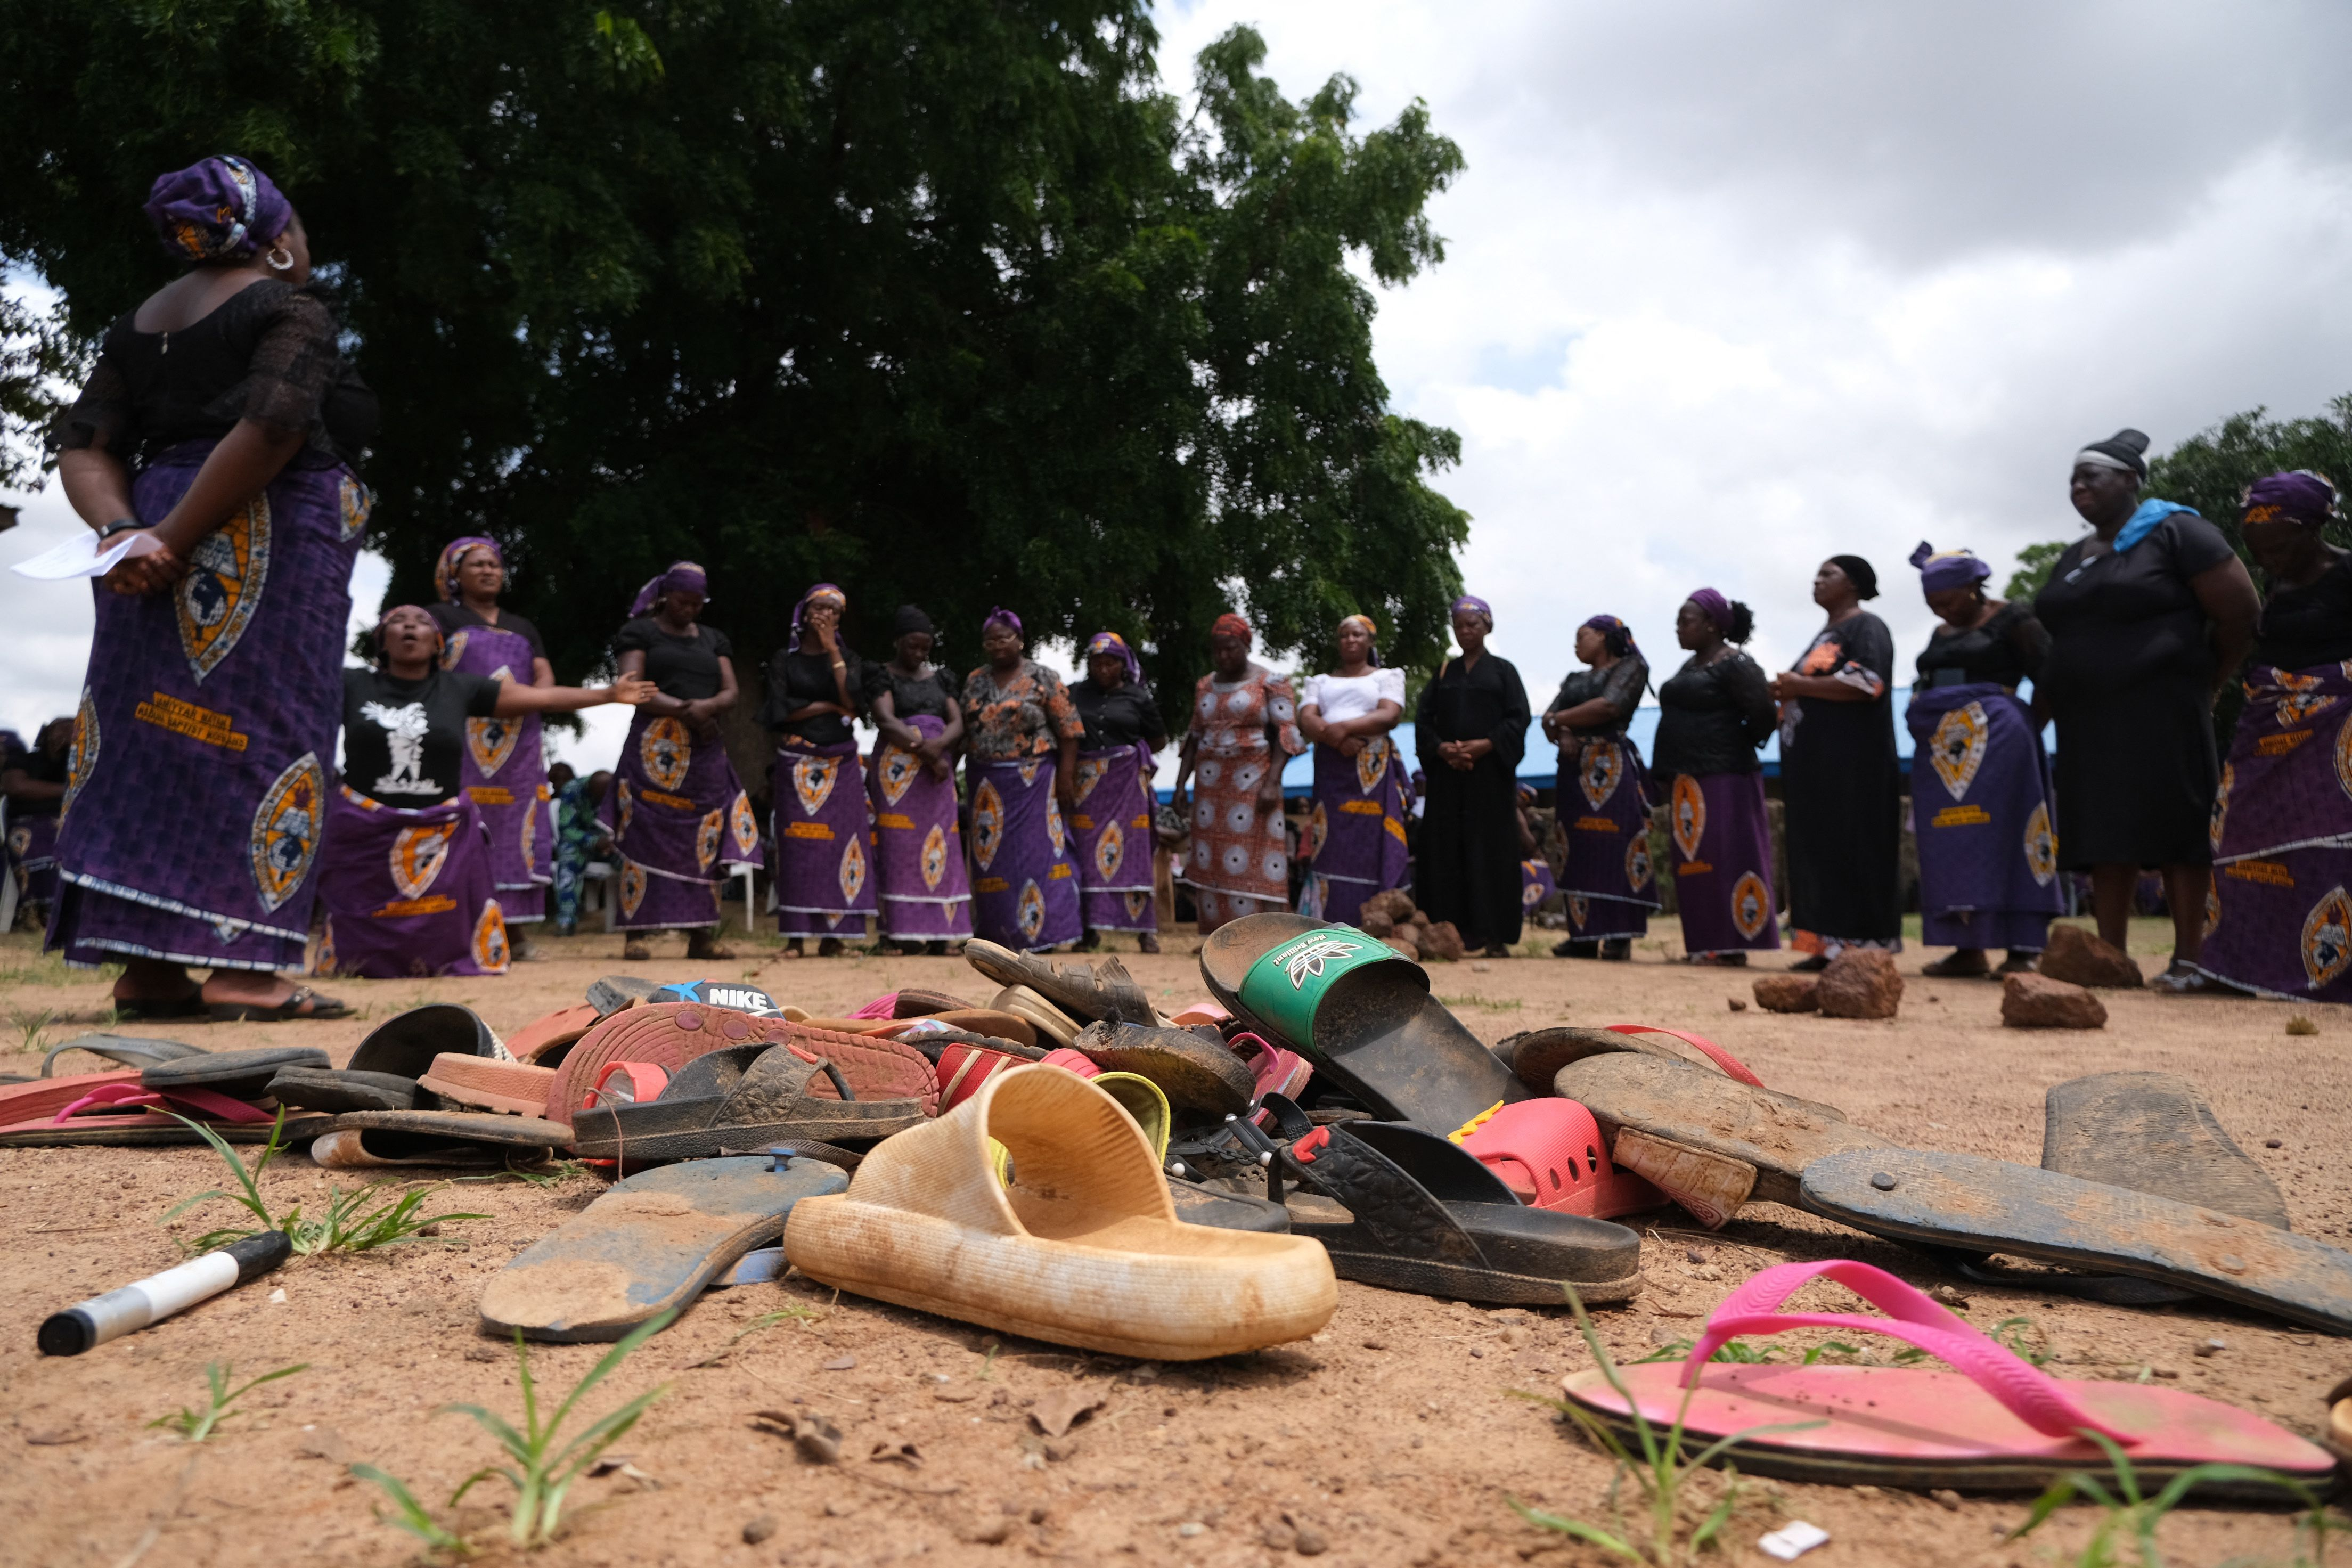 Flip flops from students of Bethel Baptist High School are pictured inside the school premises. In the background, parents of abducted students pray for the return of their children abducted by gunmen in the Kaduna state, northwest Nigeria, on July 14, 2021.